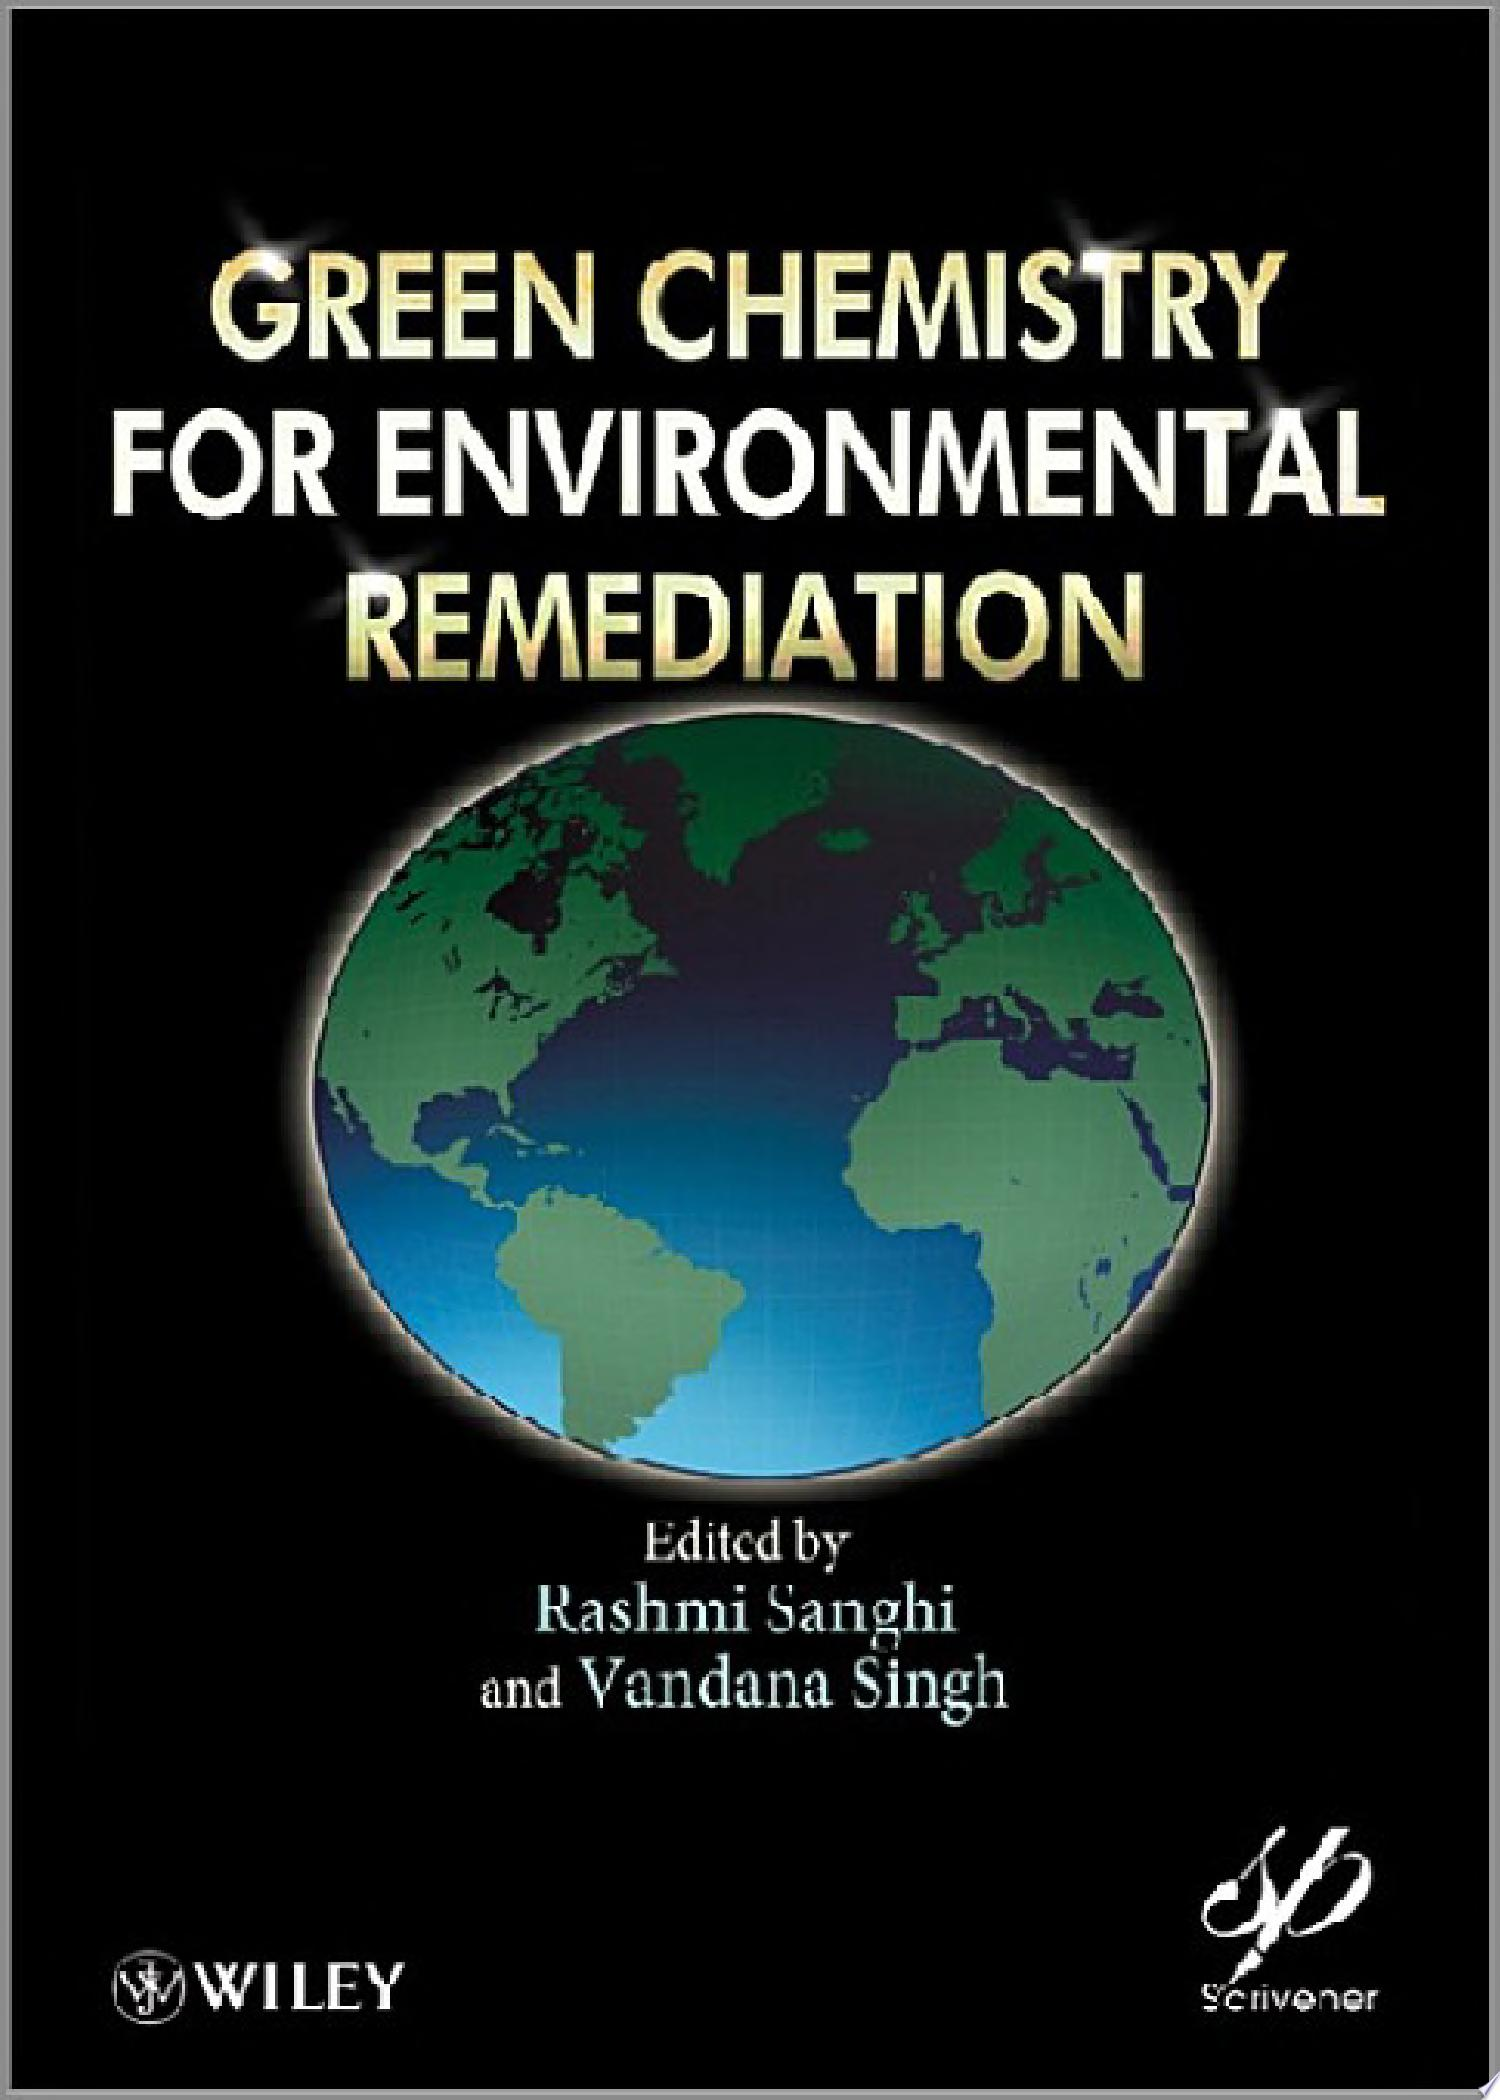 Green Chemistry for Environmental Remediation